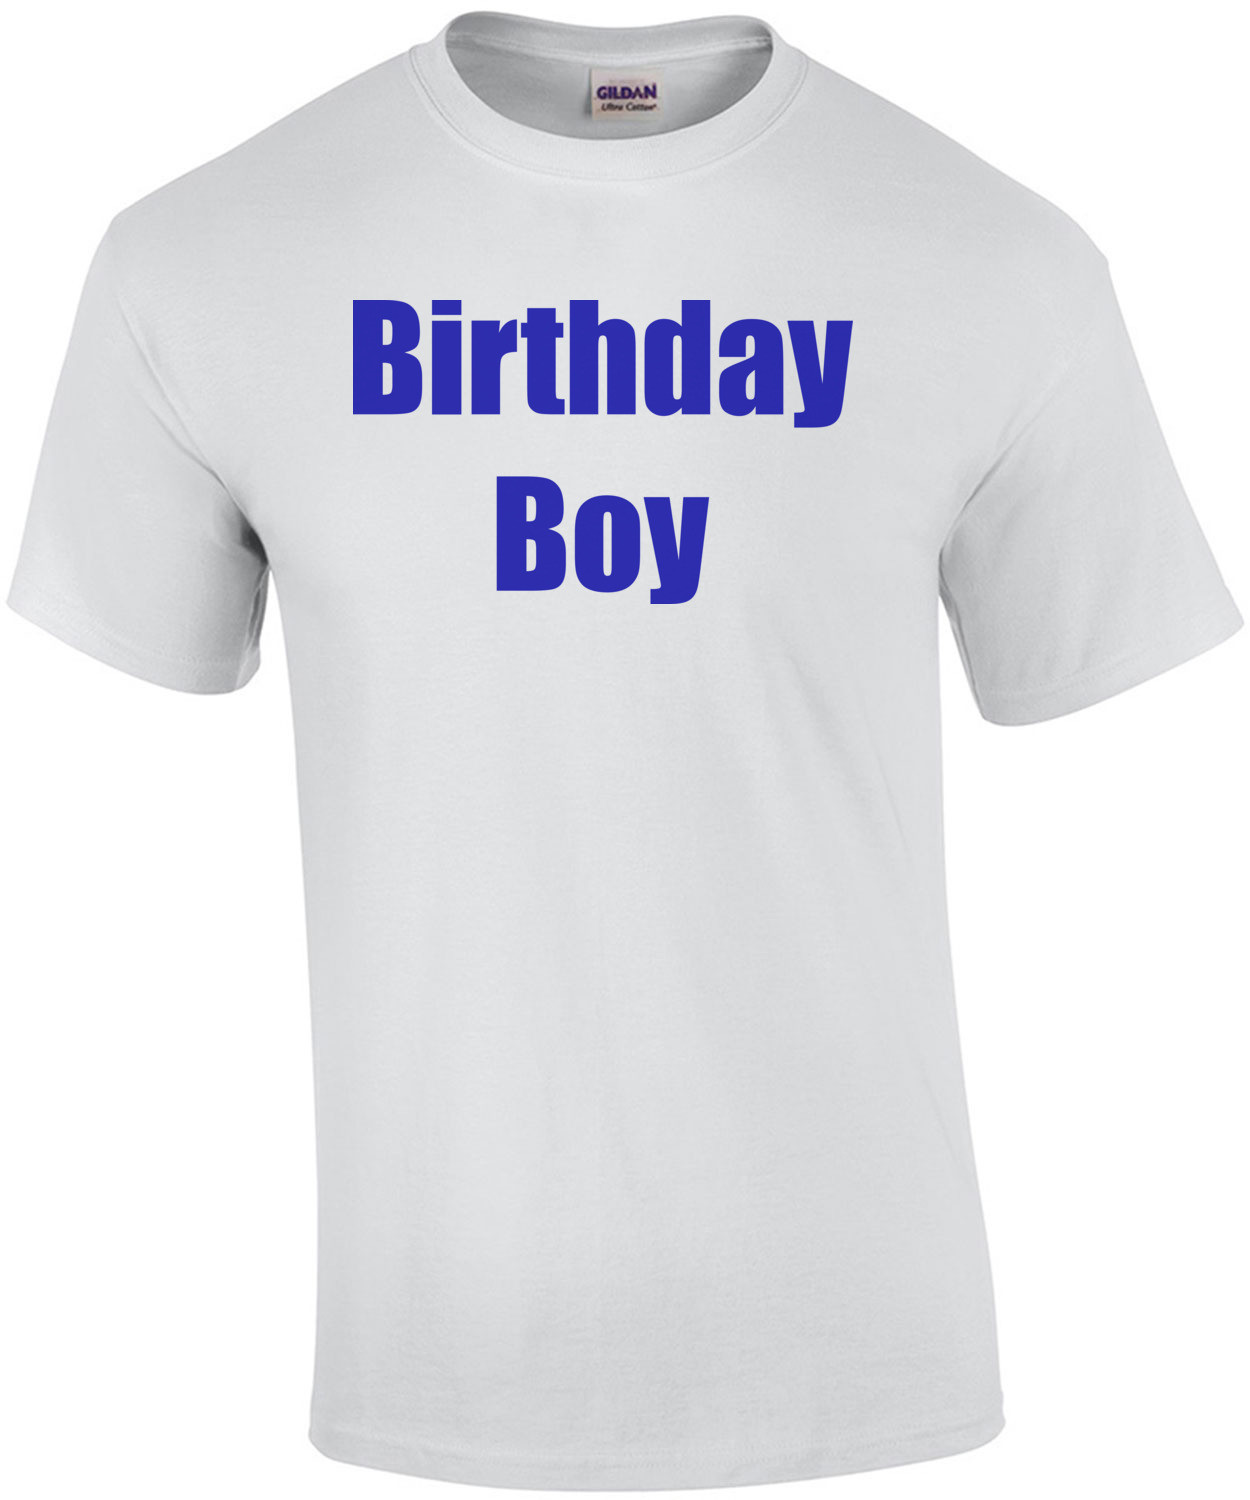 Birthday Boy - Happy Birthday Shirt